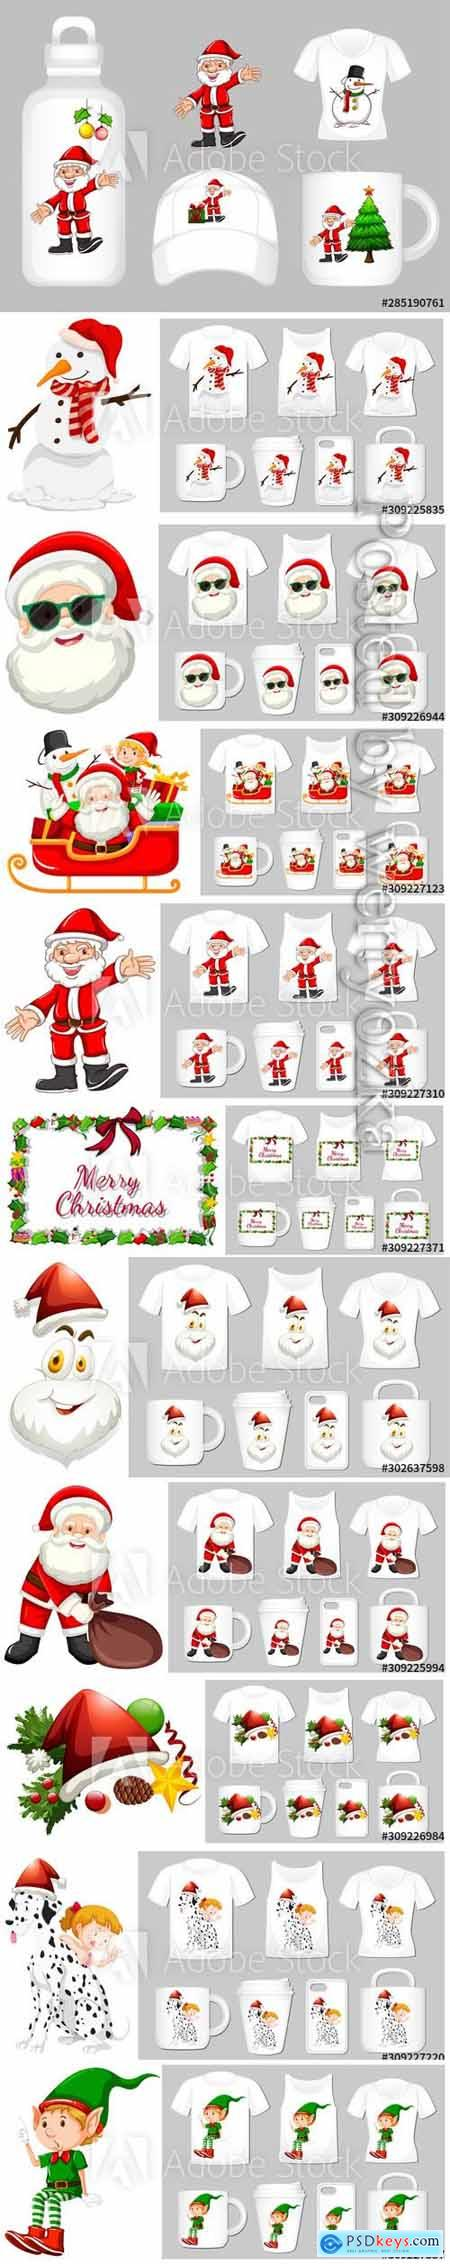 Christmas theme with ornaments on many products572